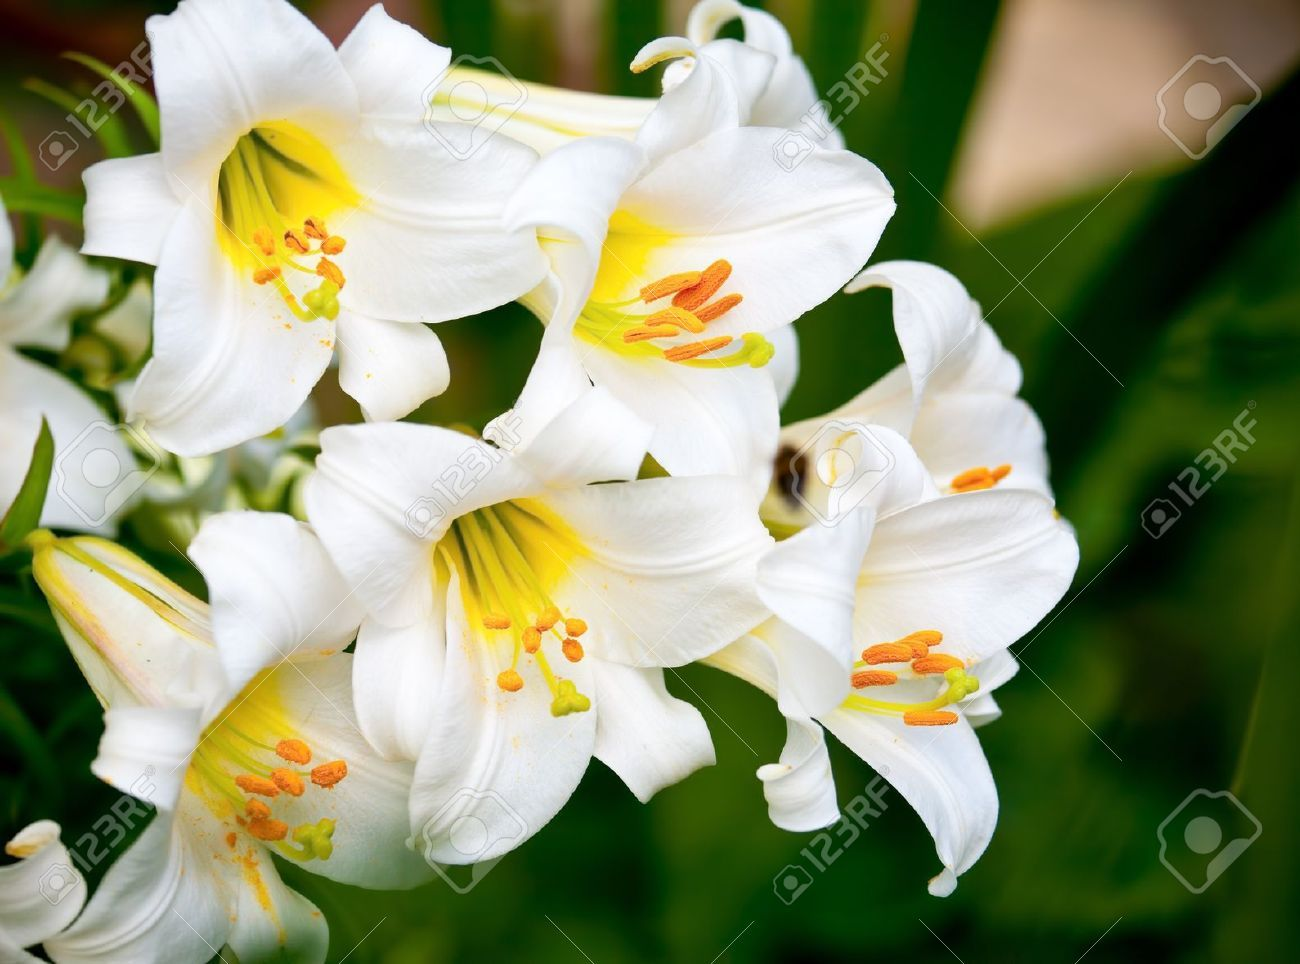 White easter lily flowers in a garden shallow dof stock photo white easter lily flowers in a garden shallow dof stock photo izmirmasajfo